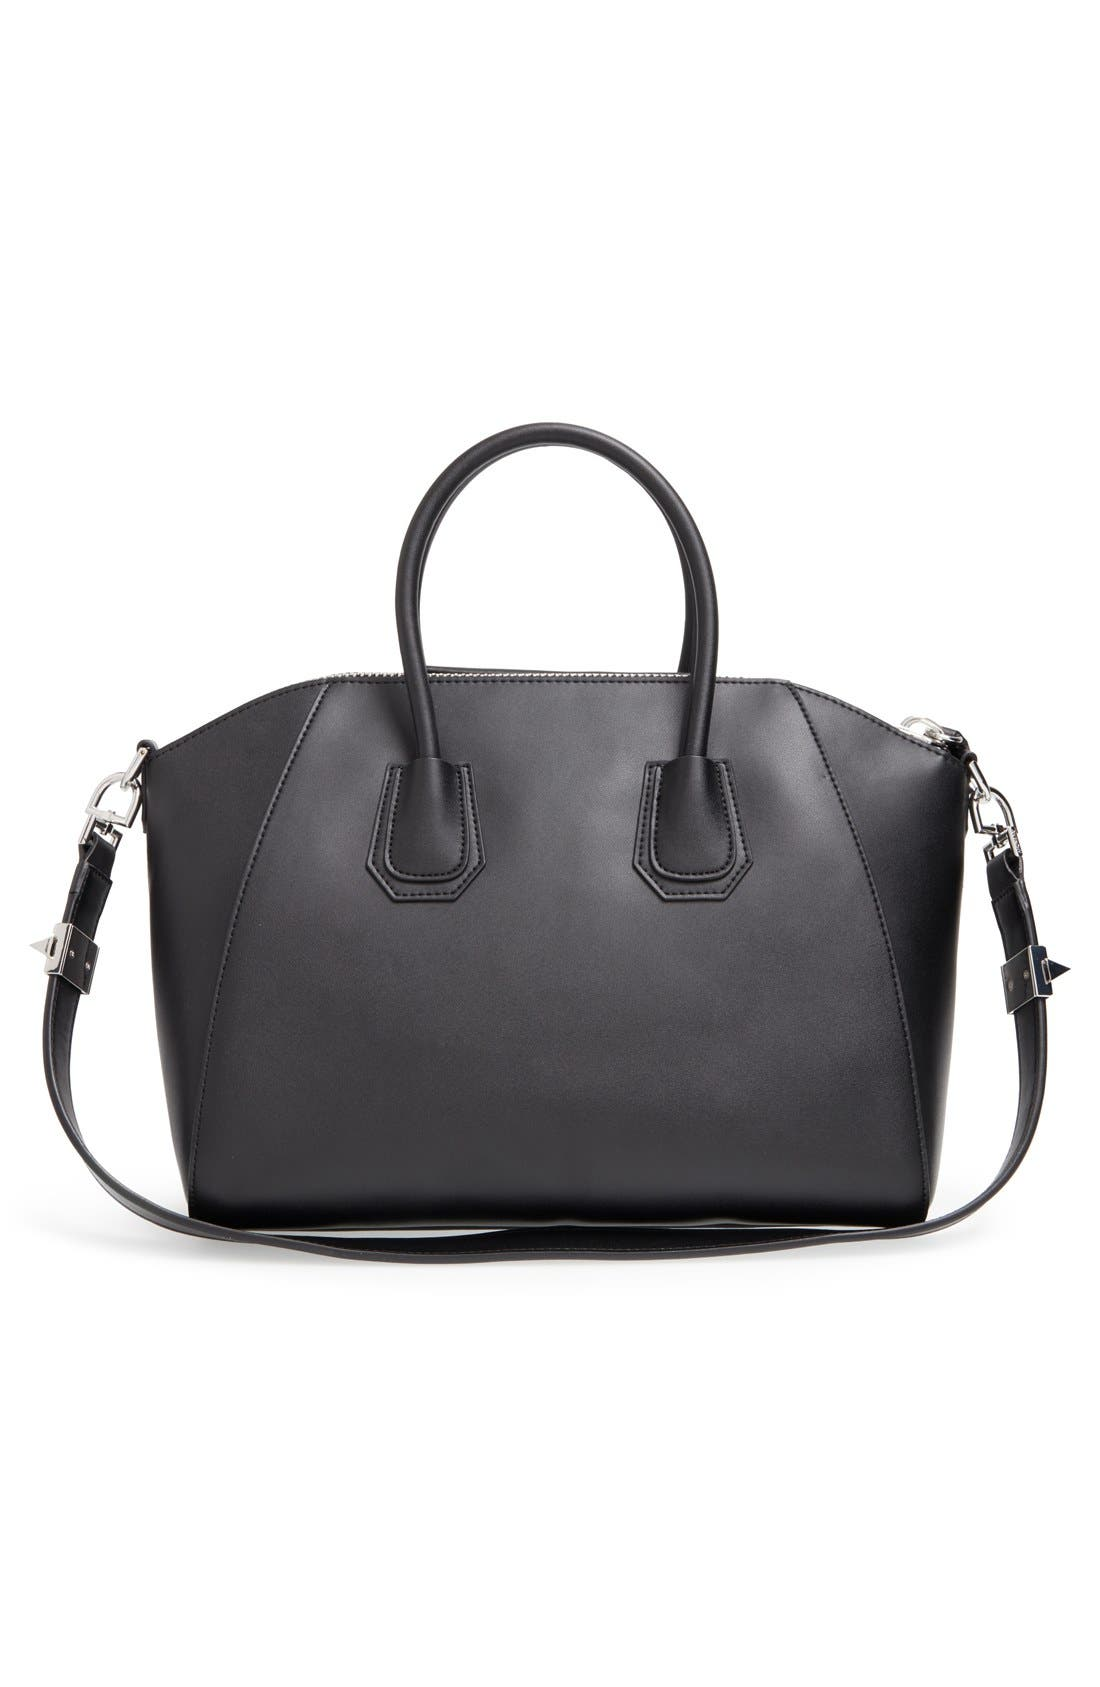 'Medium Antigona' Leather Satchel,                             Alternate thumbnail 4, color,                             BLACK